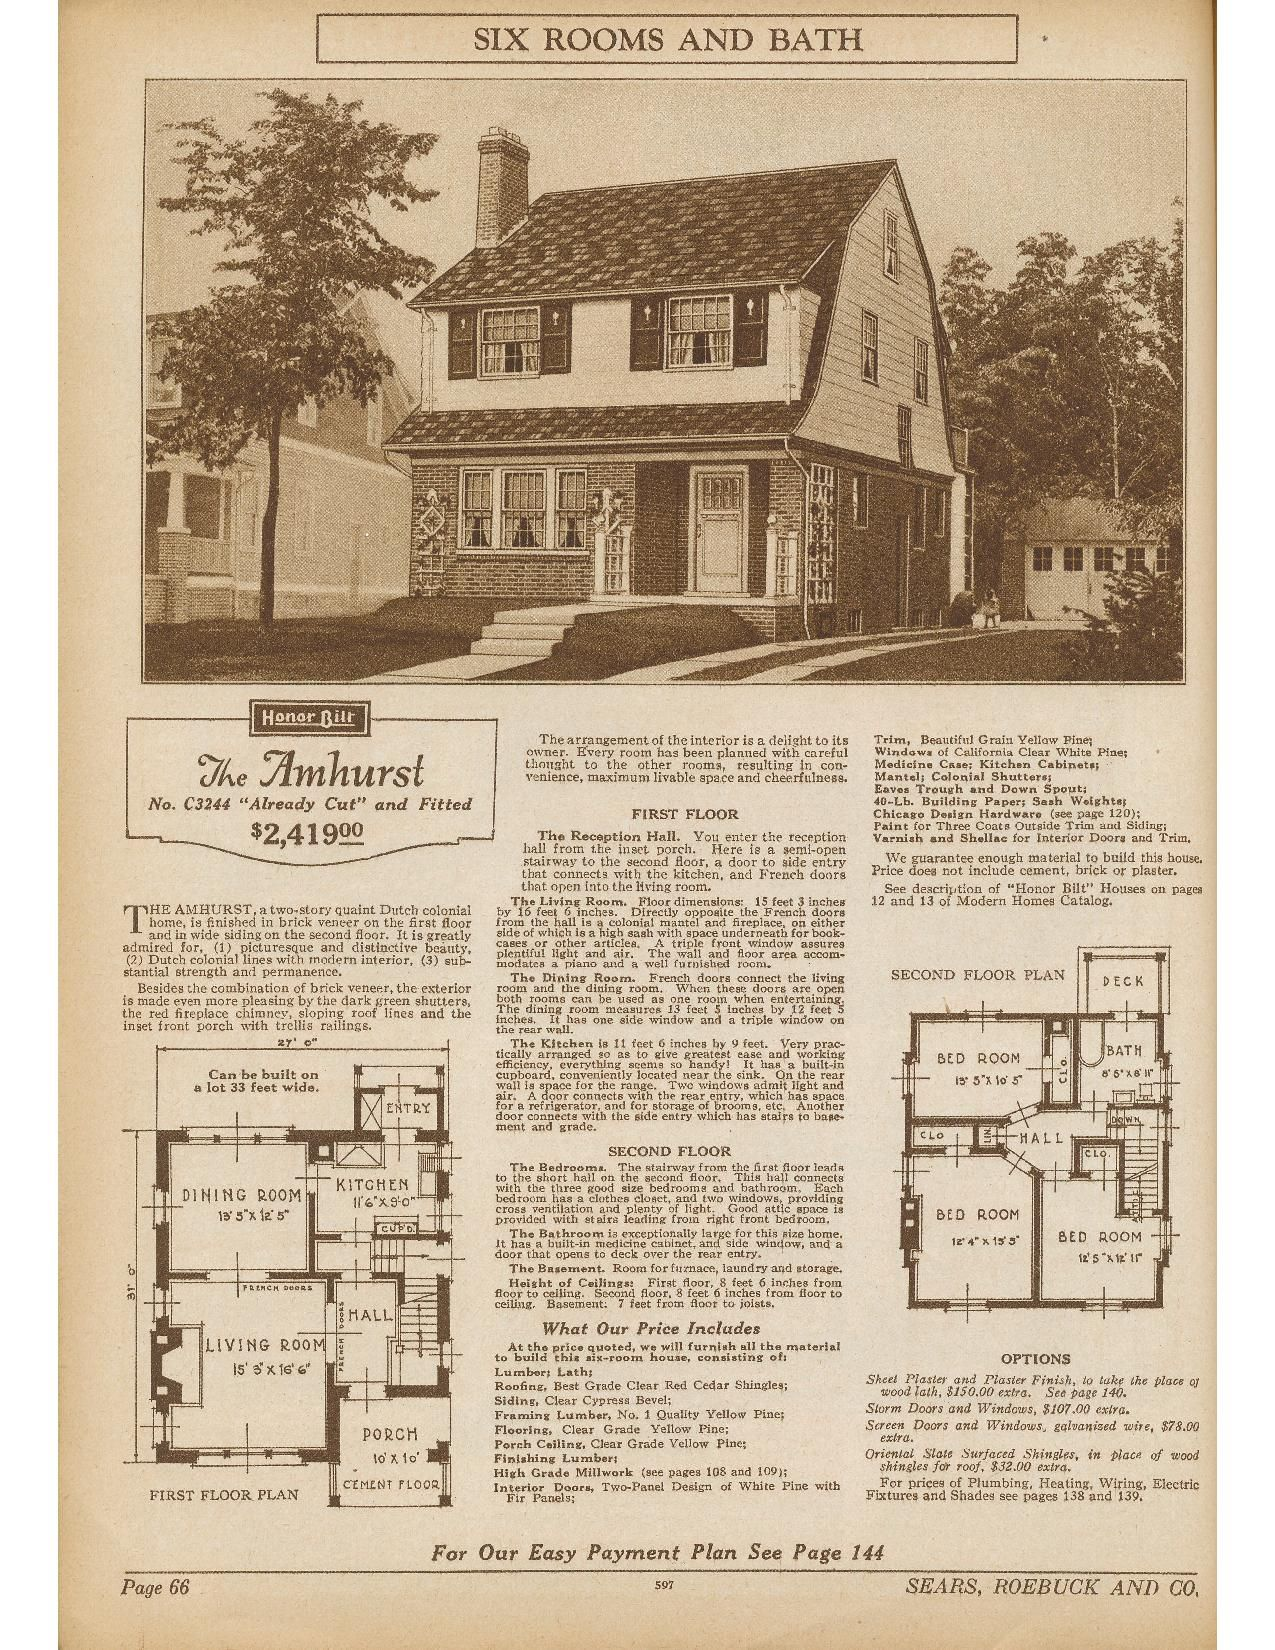 Pin By Dale Haynes On Vintage Home Plans In 2020 Dutch Colonial Kit Homes House Plans